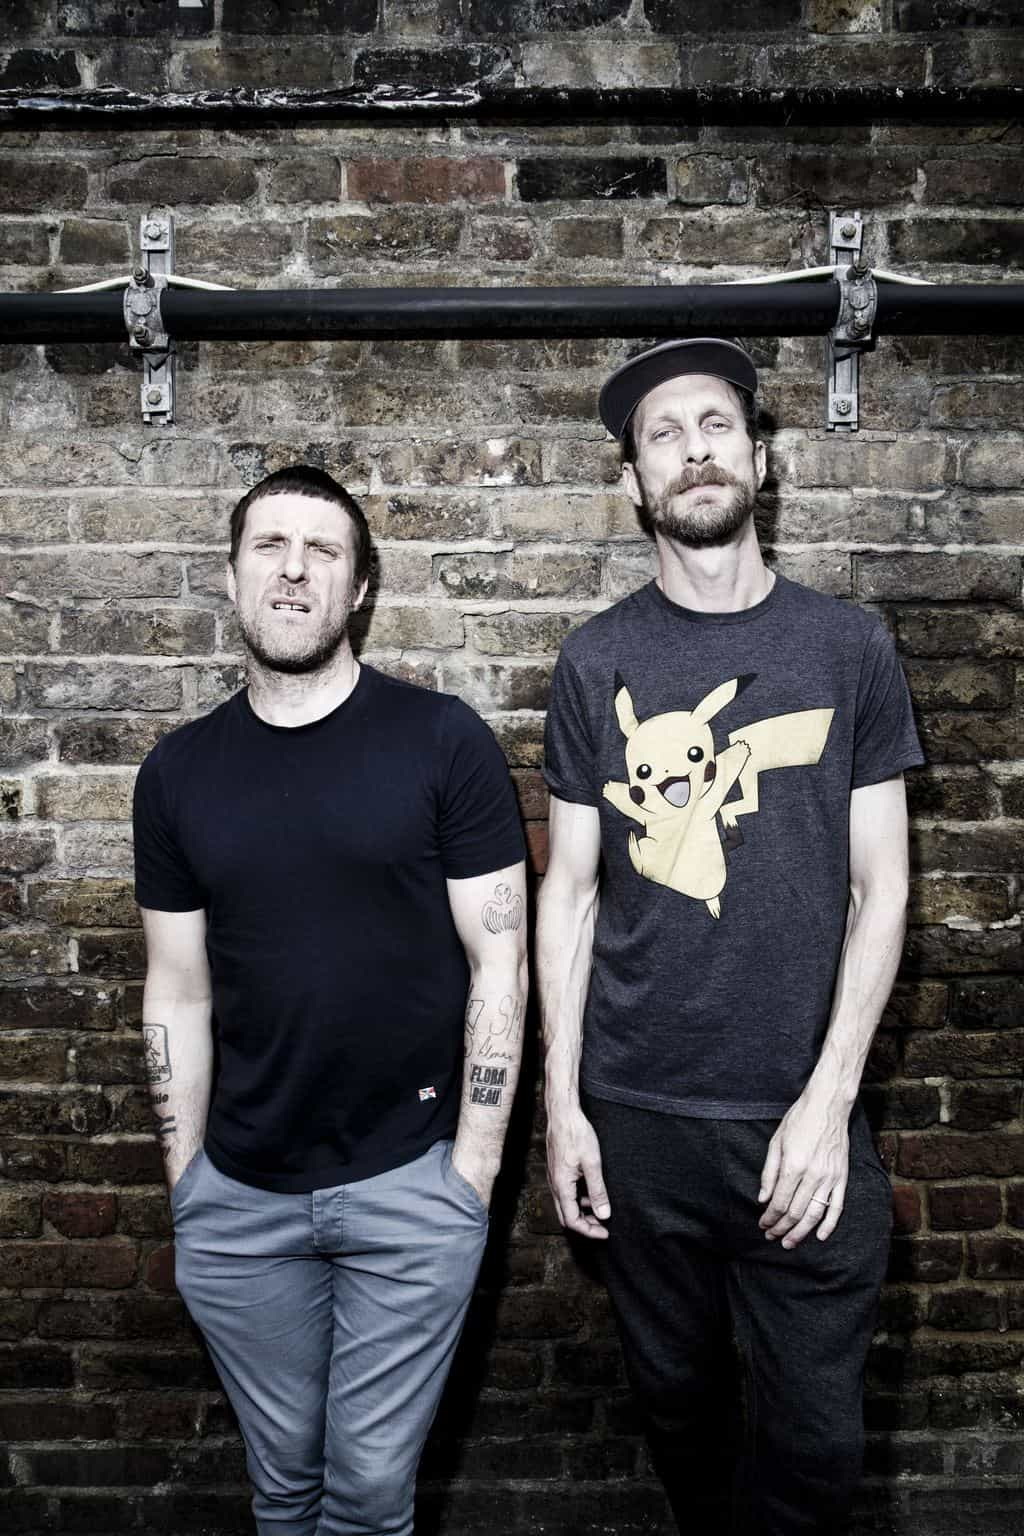 Sleaford Mods stood against a wall